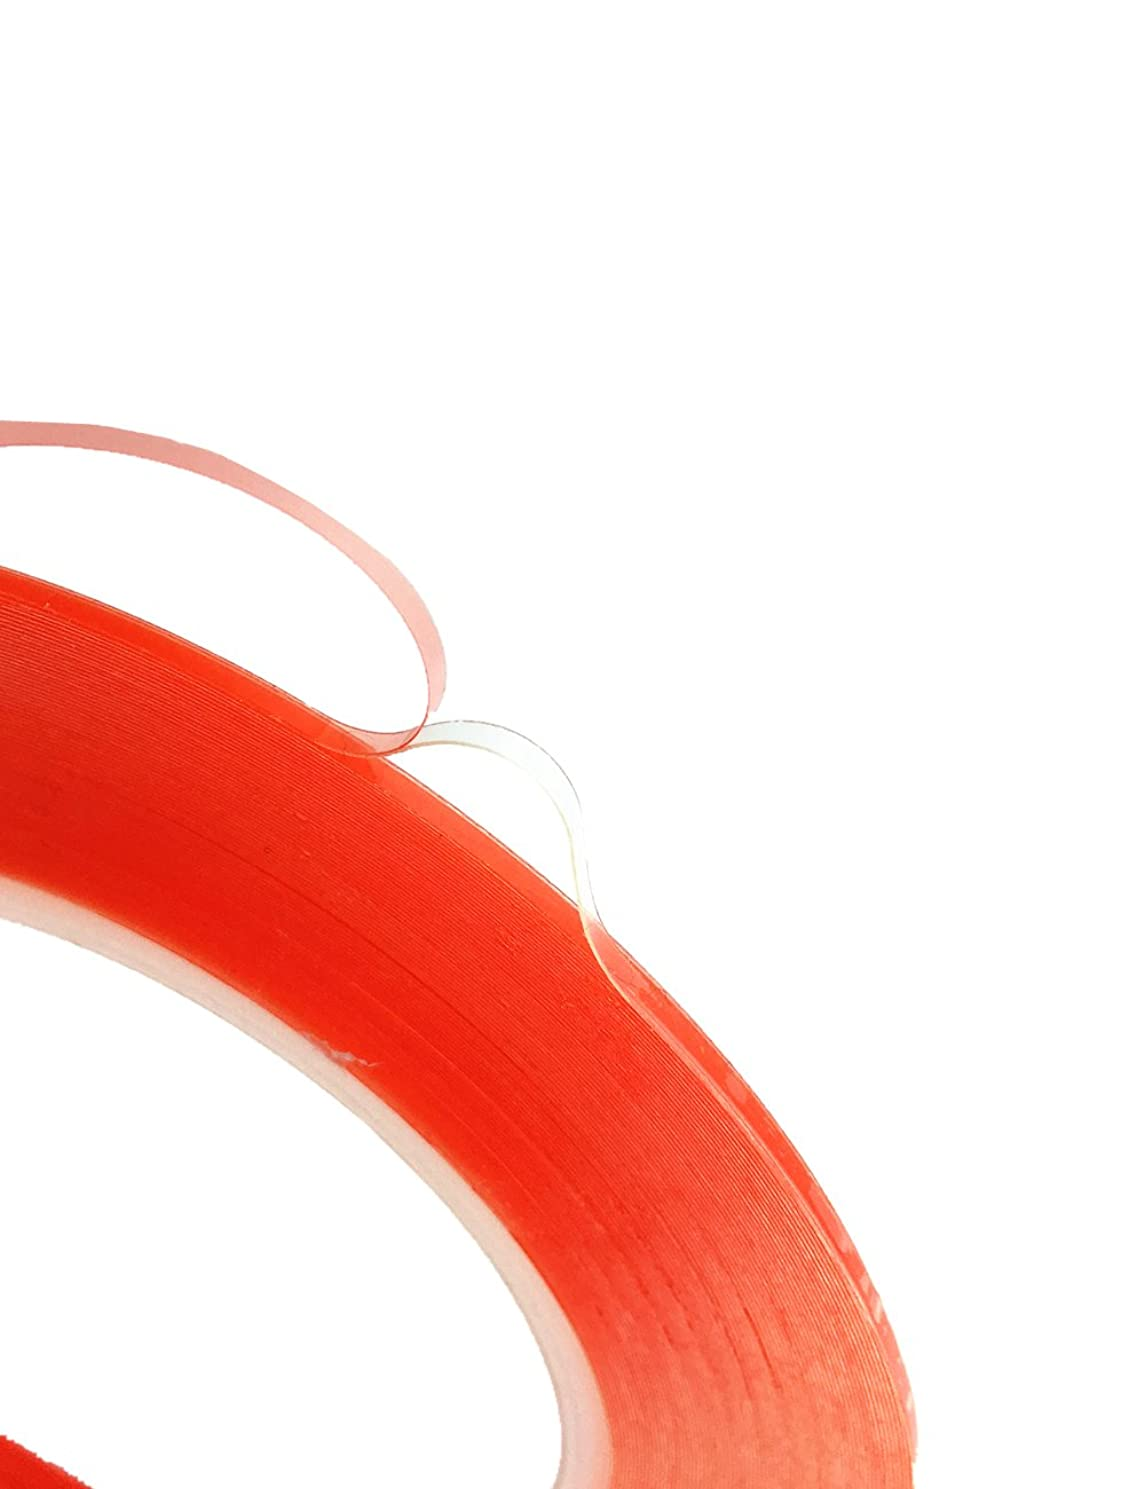 2mm PET Acrylic Clear?Double-Sided Super Tape Strength Sticker Heavy Duty For Cellphone Touch Screen Digitizer LCD Display Tablet PC Repaired. (2mm X 82ft)